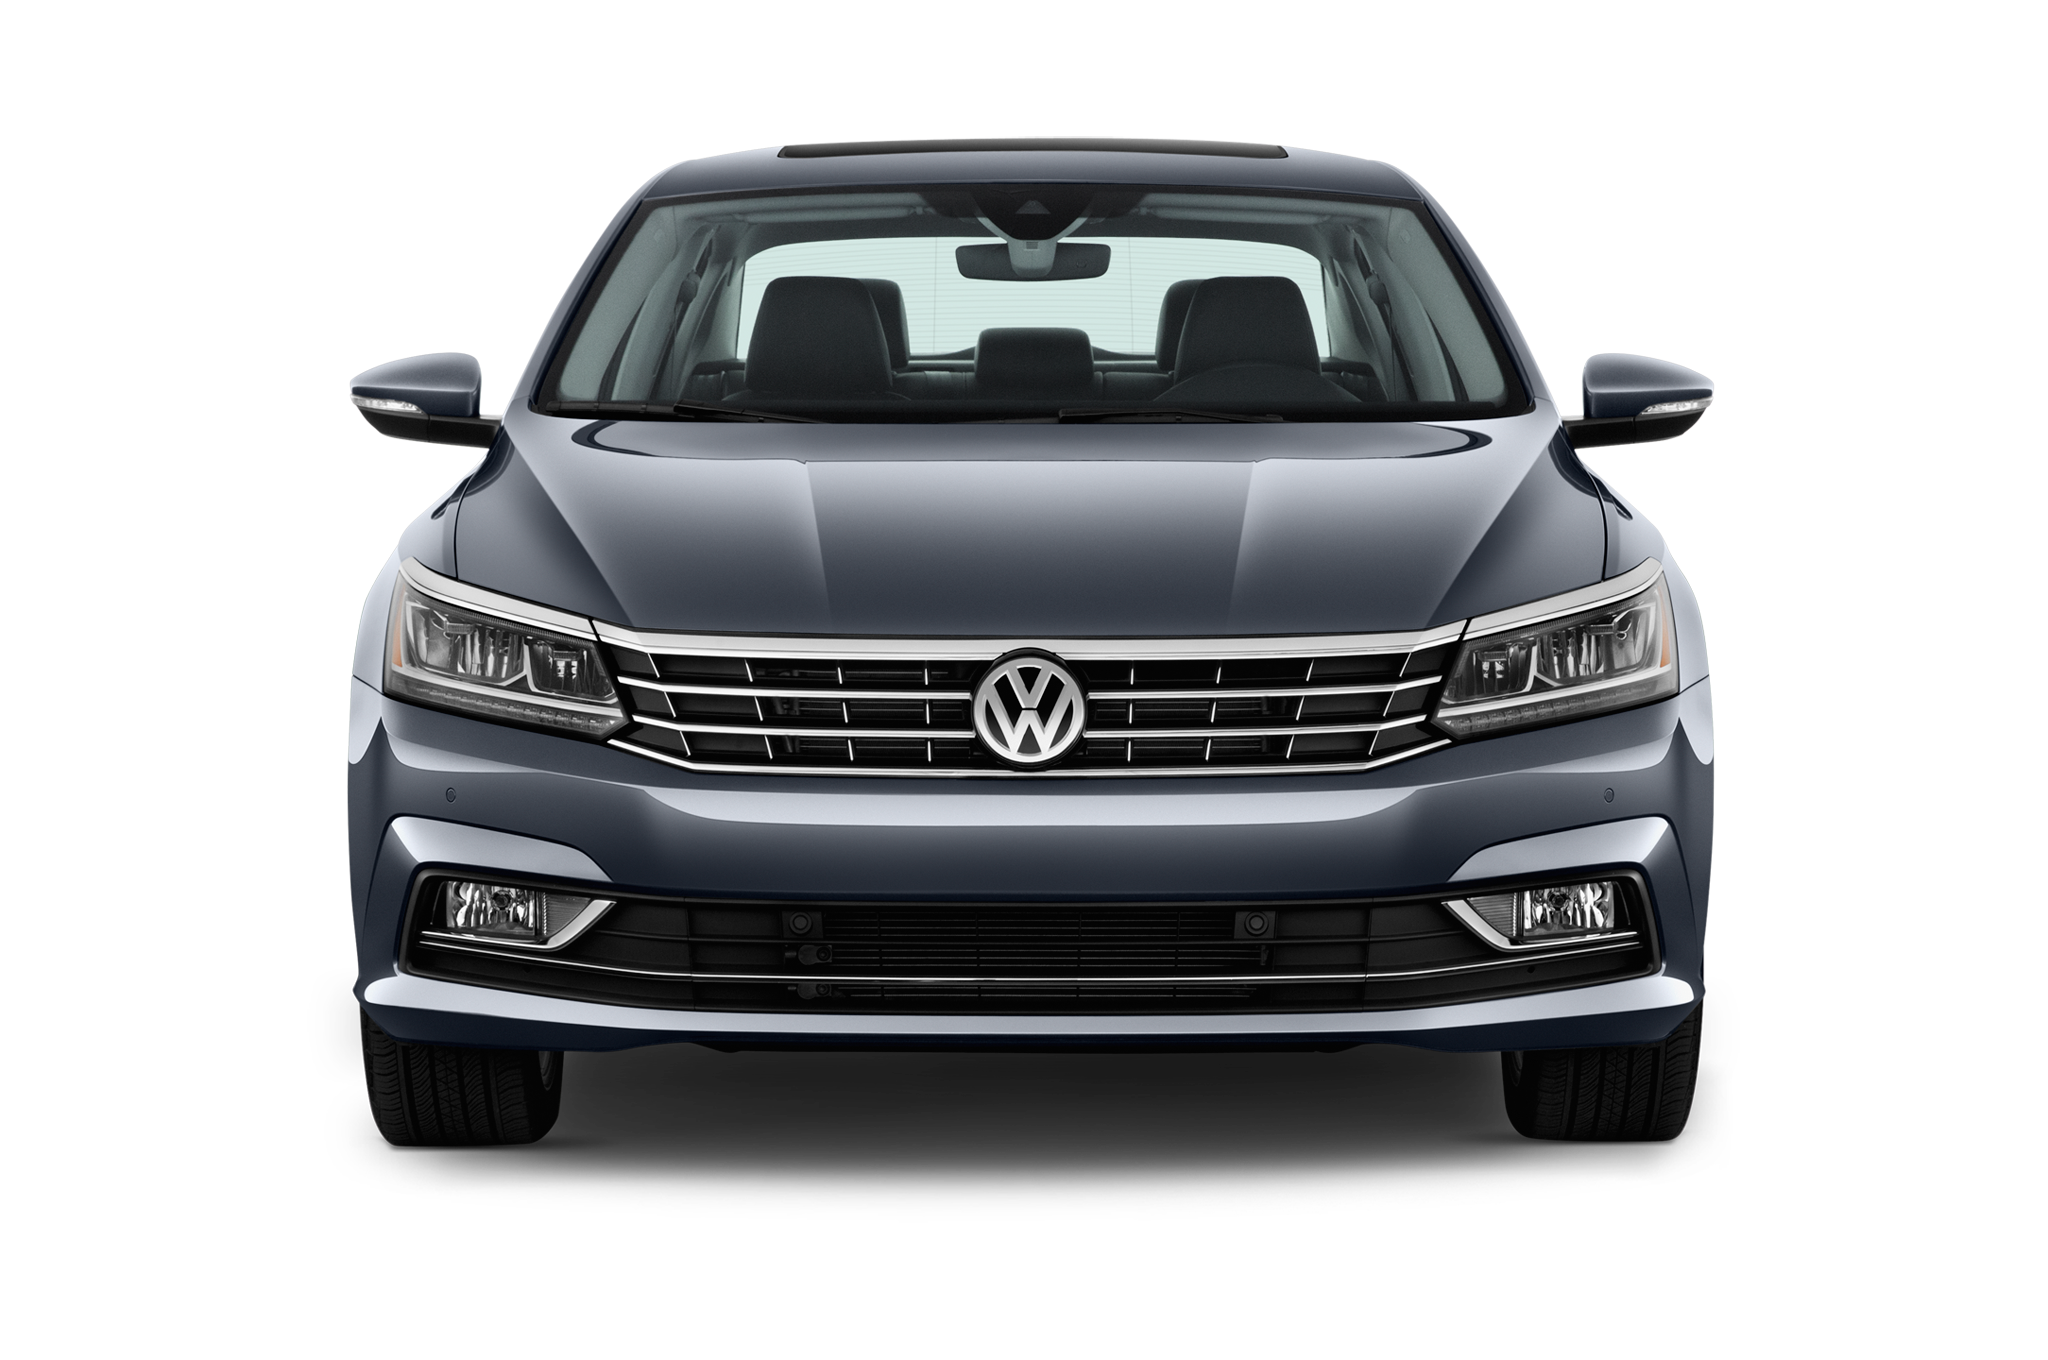 volkswagen passat gt concept to debut at 2016 los angeles auto show automobile magazine. Black Bedroom Furniture Sets. Home Design Ideas